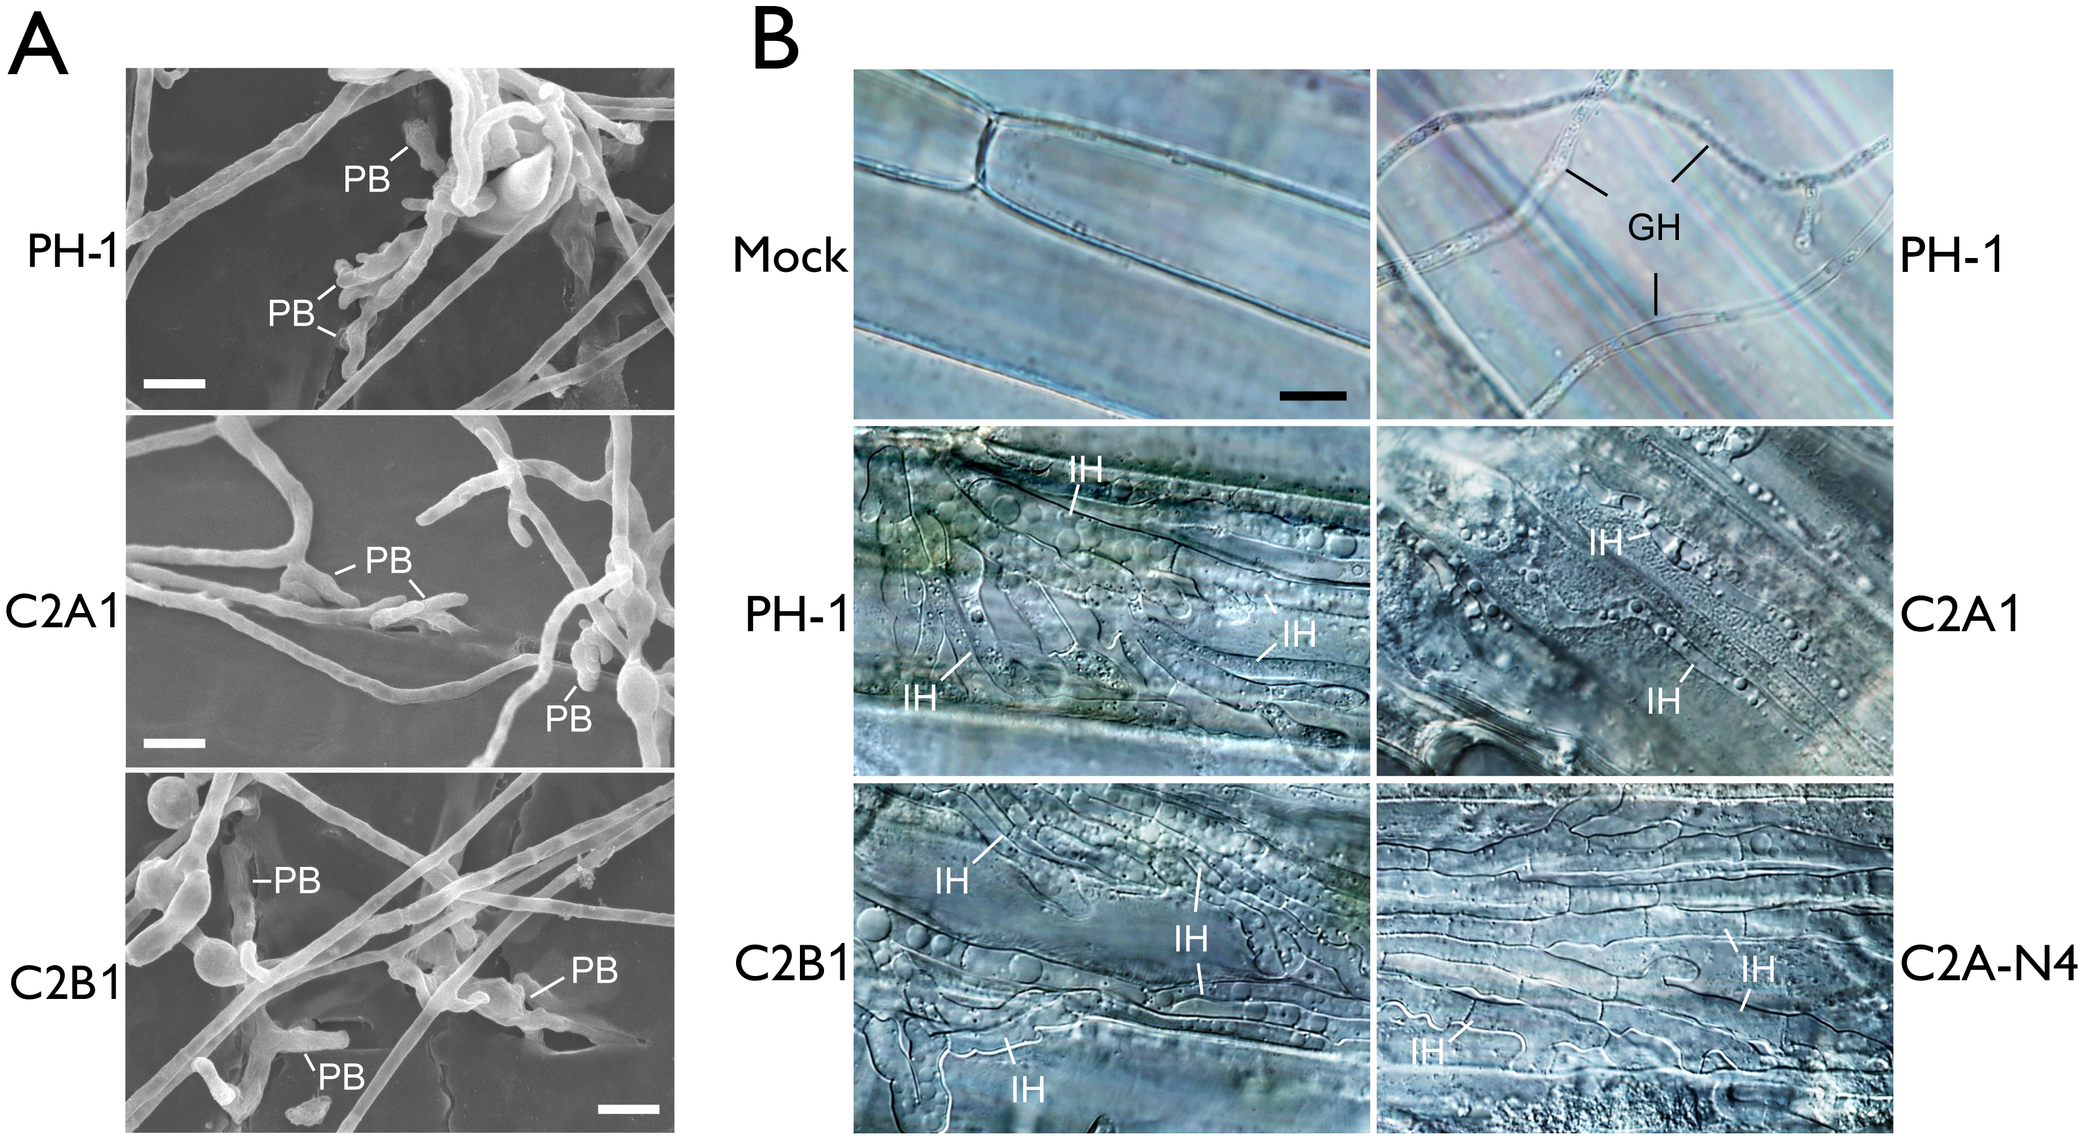 Assays for defects of the <i>cdc2A</i> and <i>cdc2B</i> mutant in plant infection and colonization.